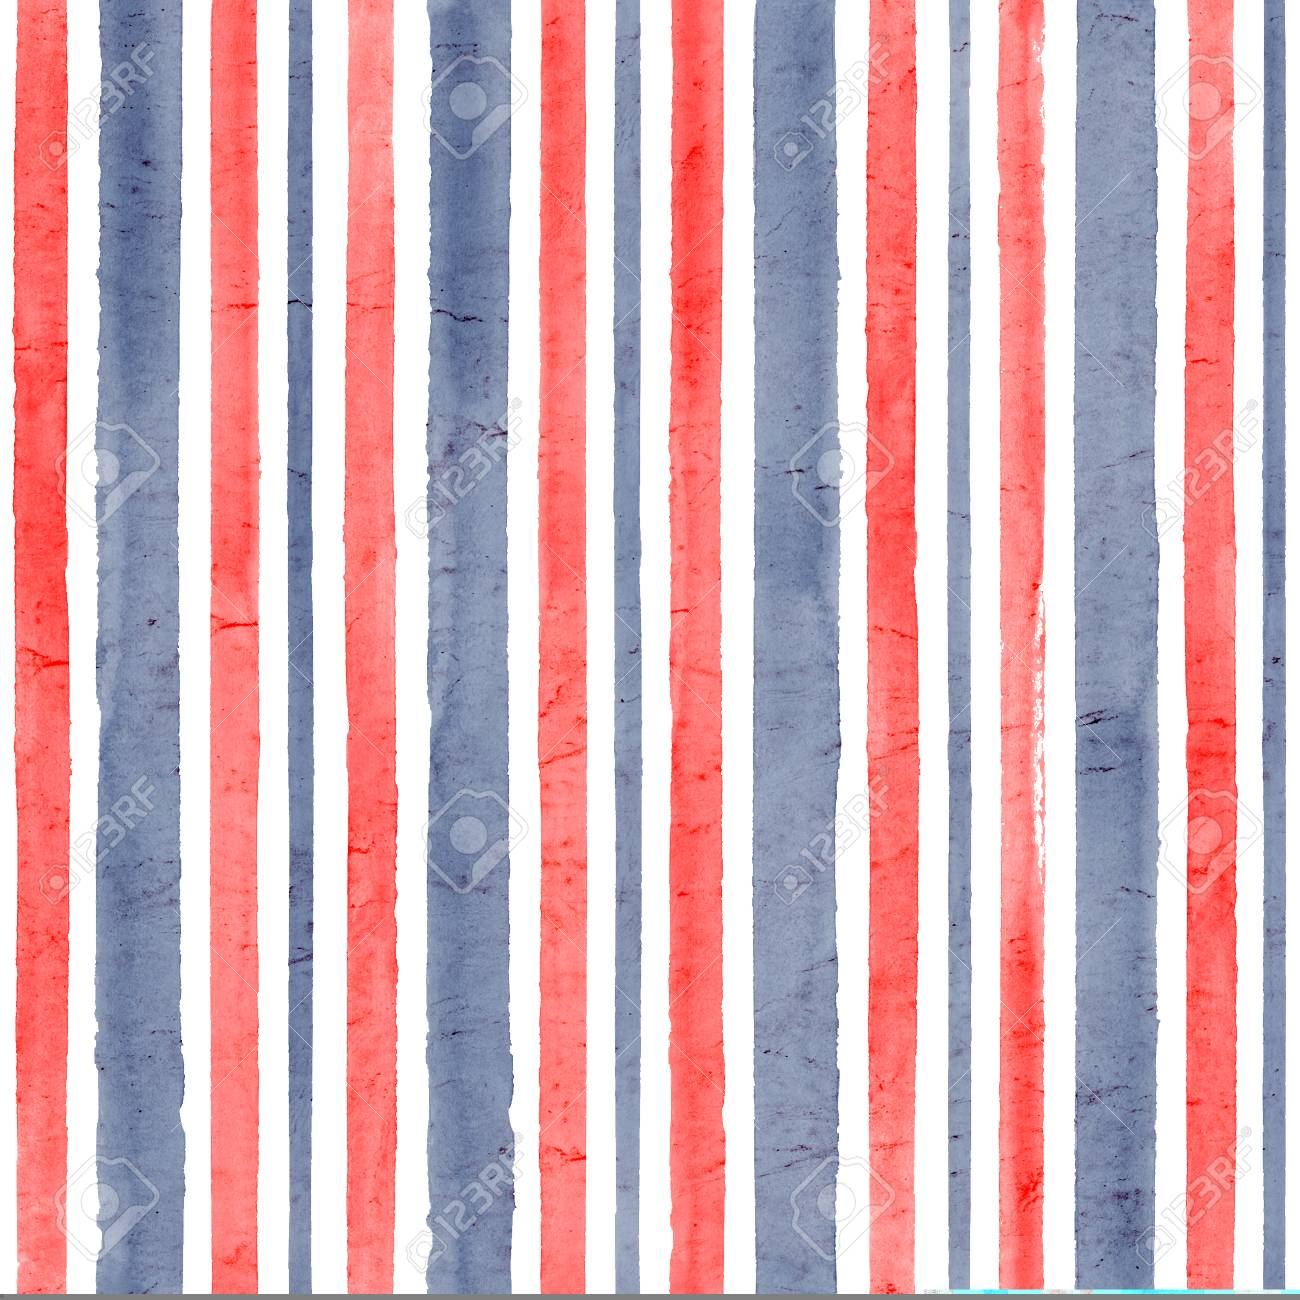 watercolor blue red white usa style stripe seamless pattern texture stock photo picture and royalty free image image 97723657 watercolor blue red white usa style stripe seamless pattern texture